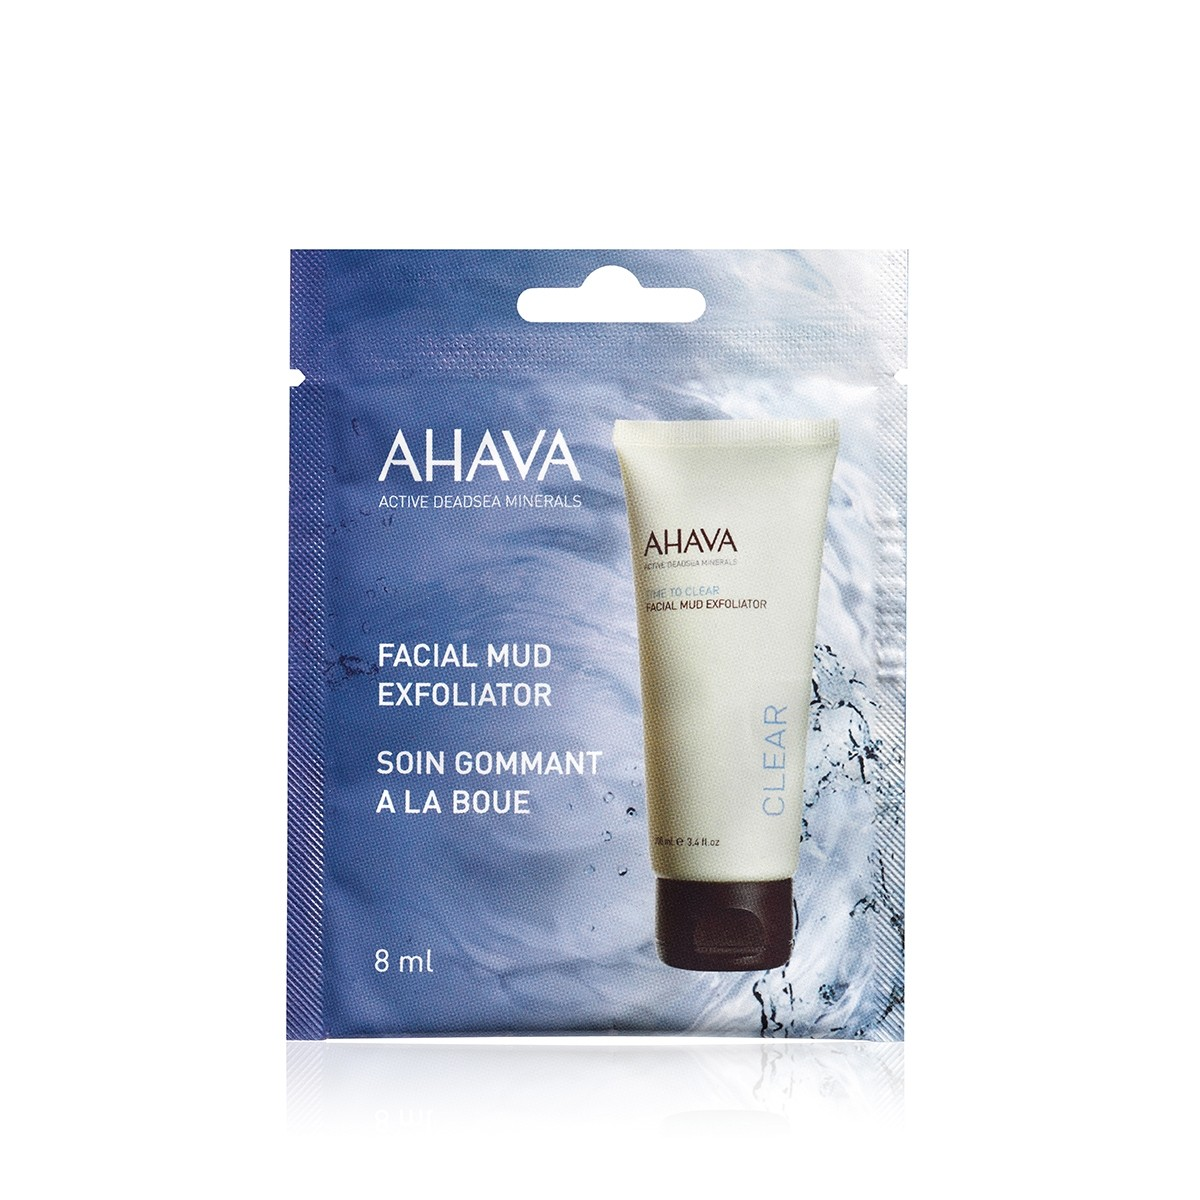 Ahava Single Use Facial Mud Exfoliator, Exfoliator Facial cu Namol, 8 ml